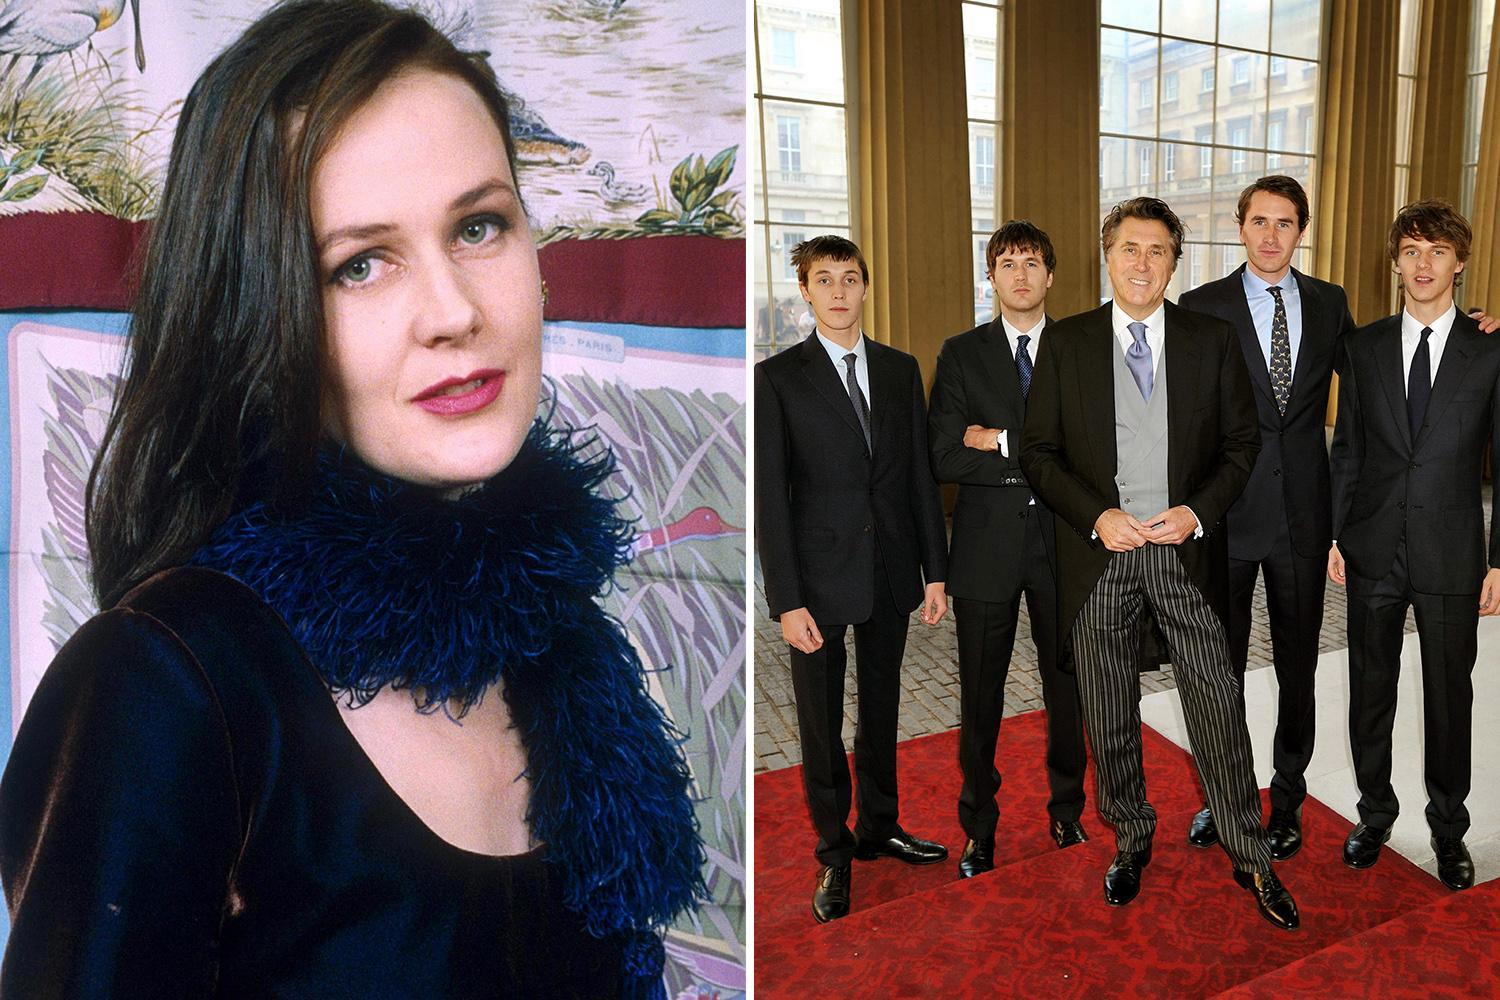 Bryan Ferry's four sons left £3.5million by his ex-wife Lucy Birley after her suicide aged 58 but she left nothing to her husband Robin